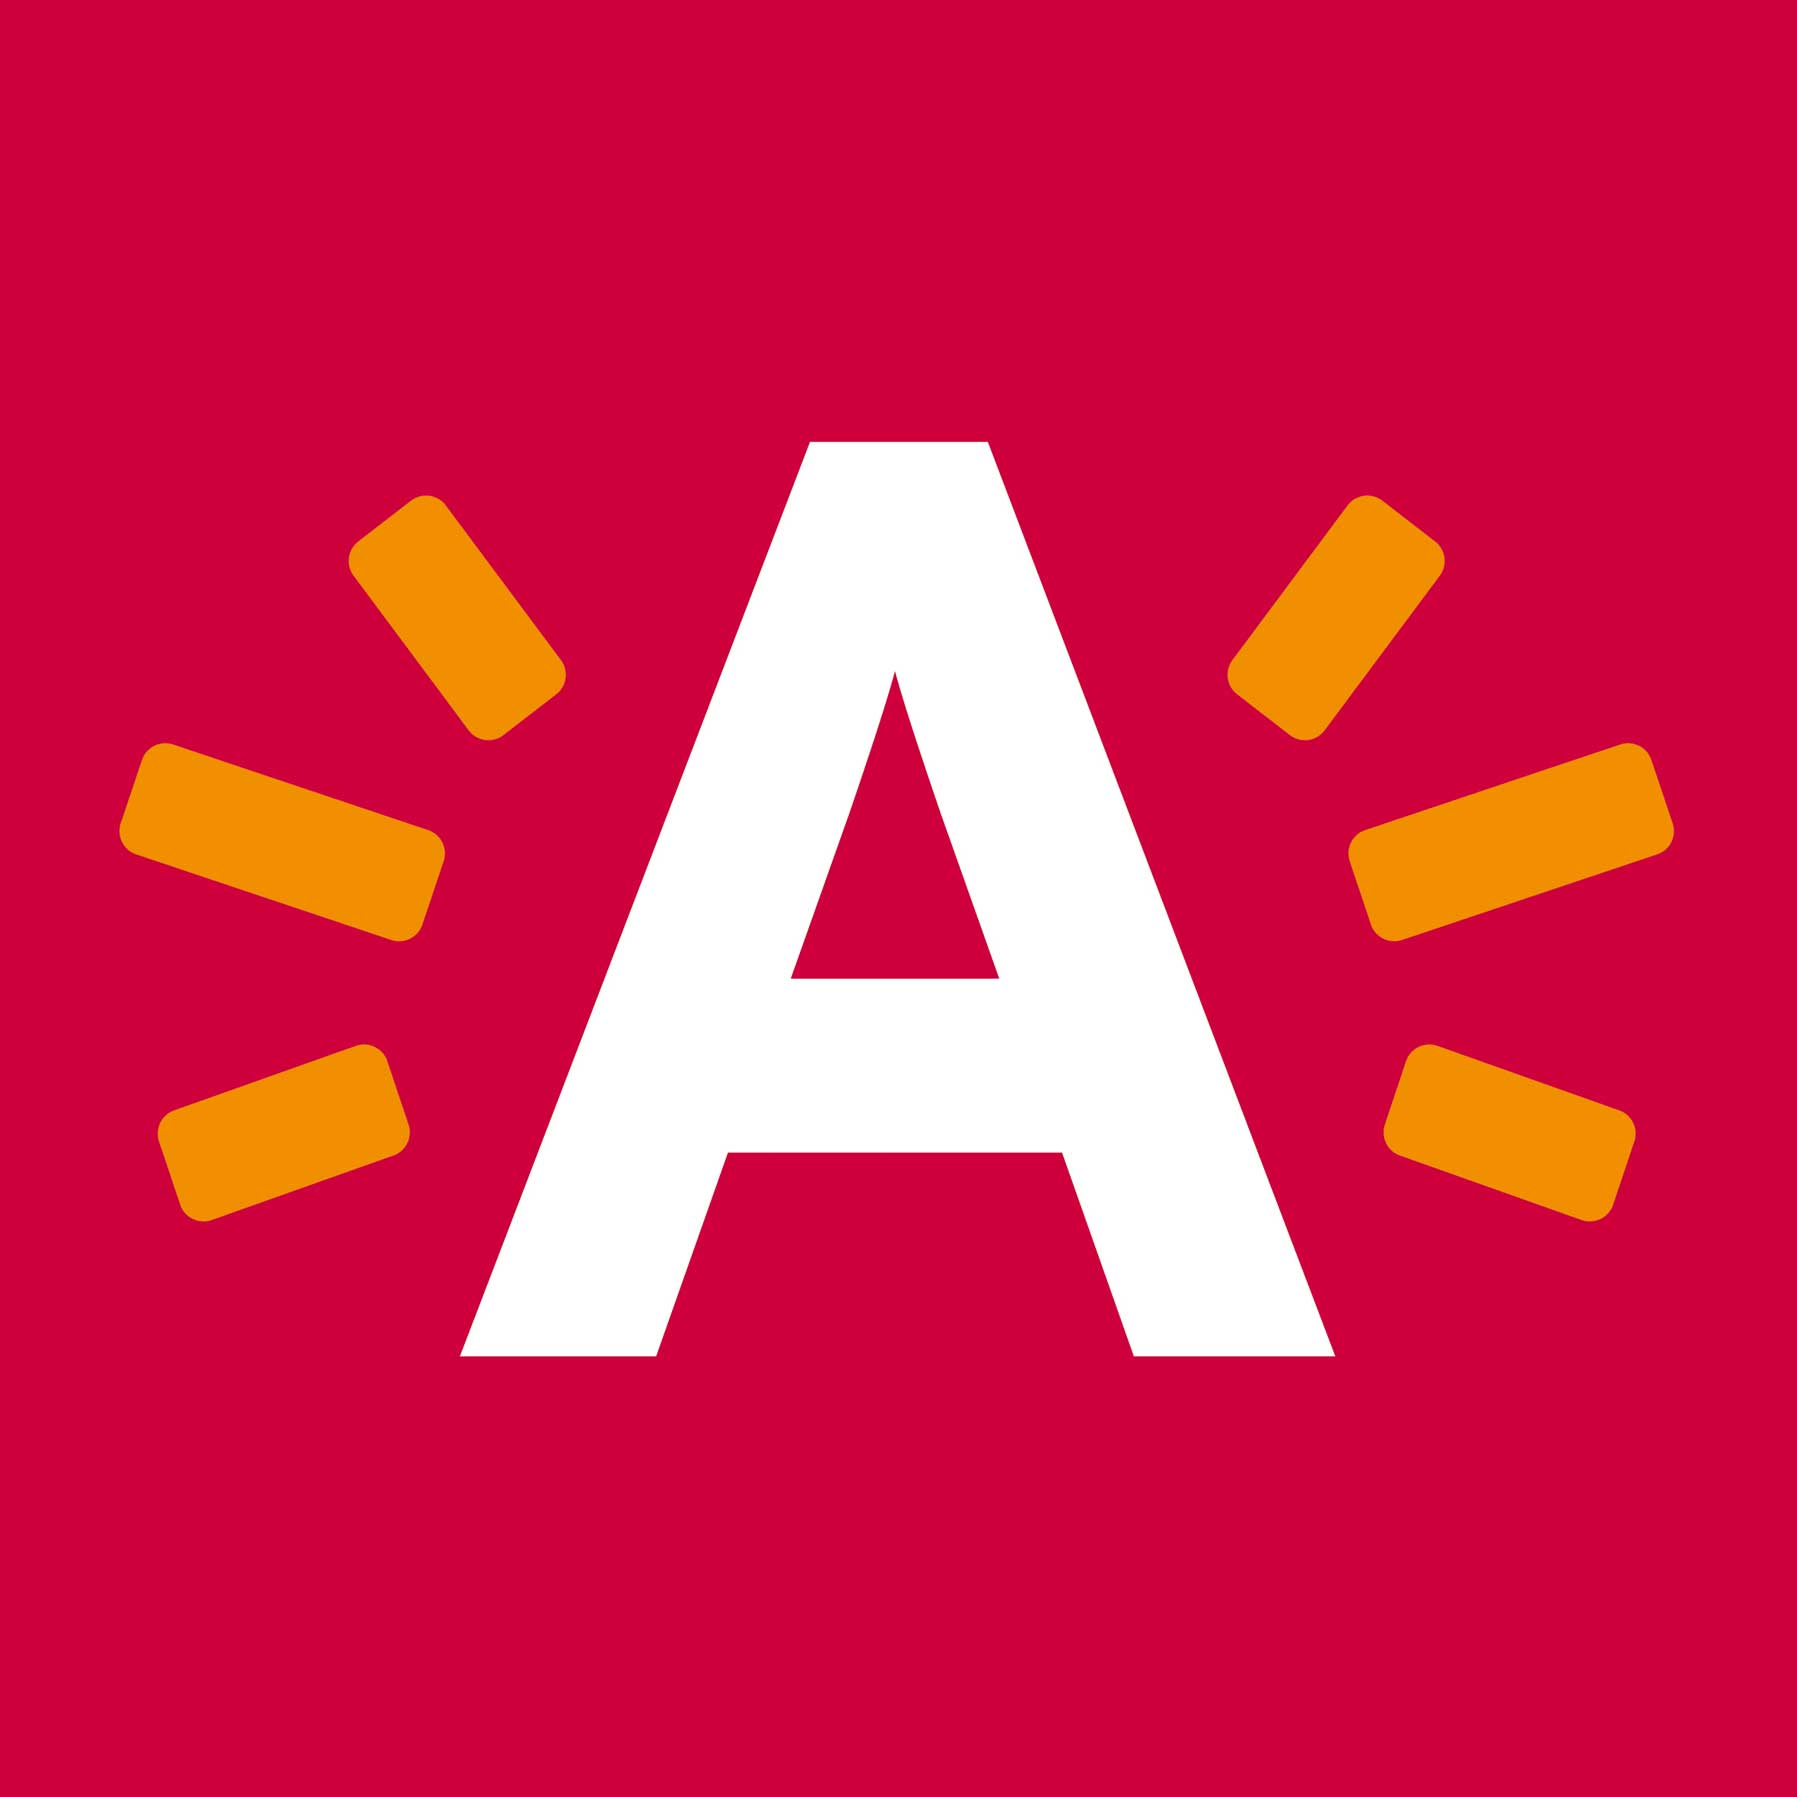 City of Antwerp logo